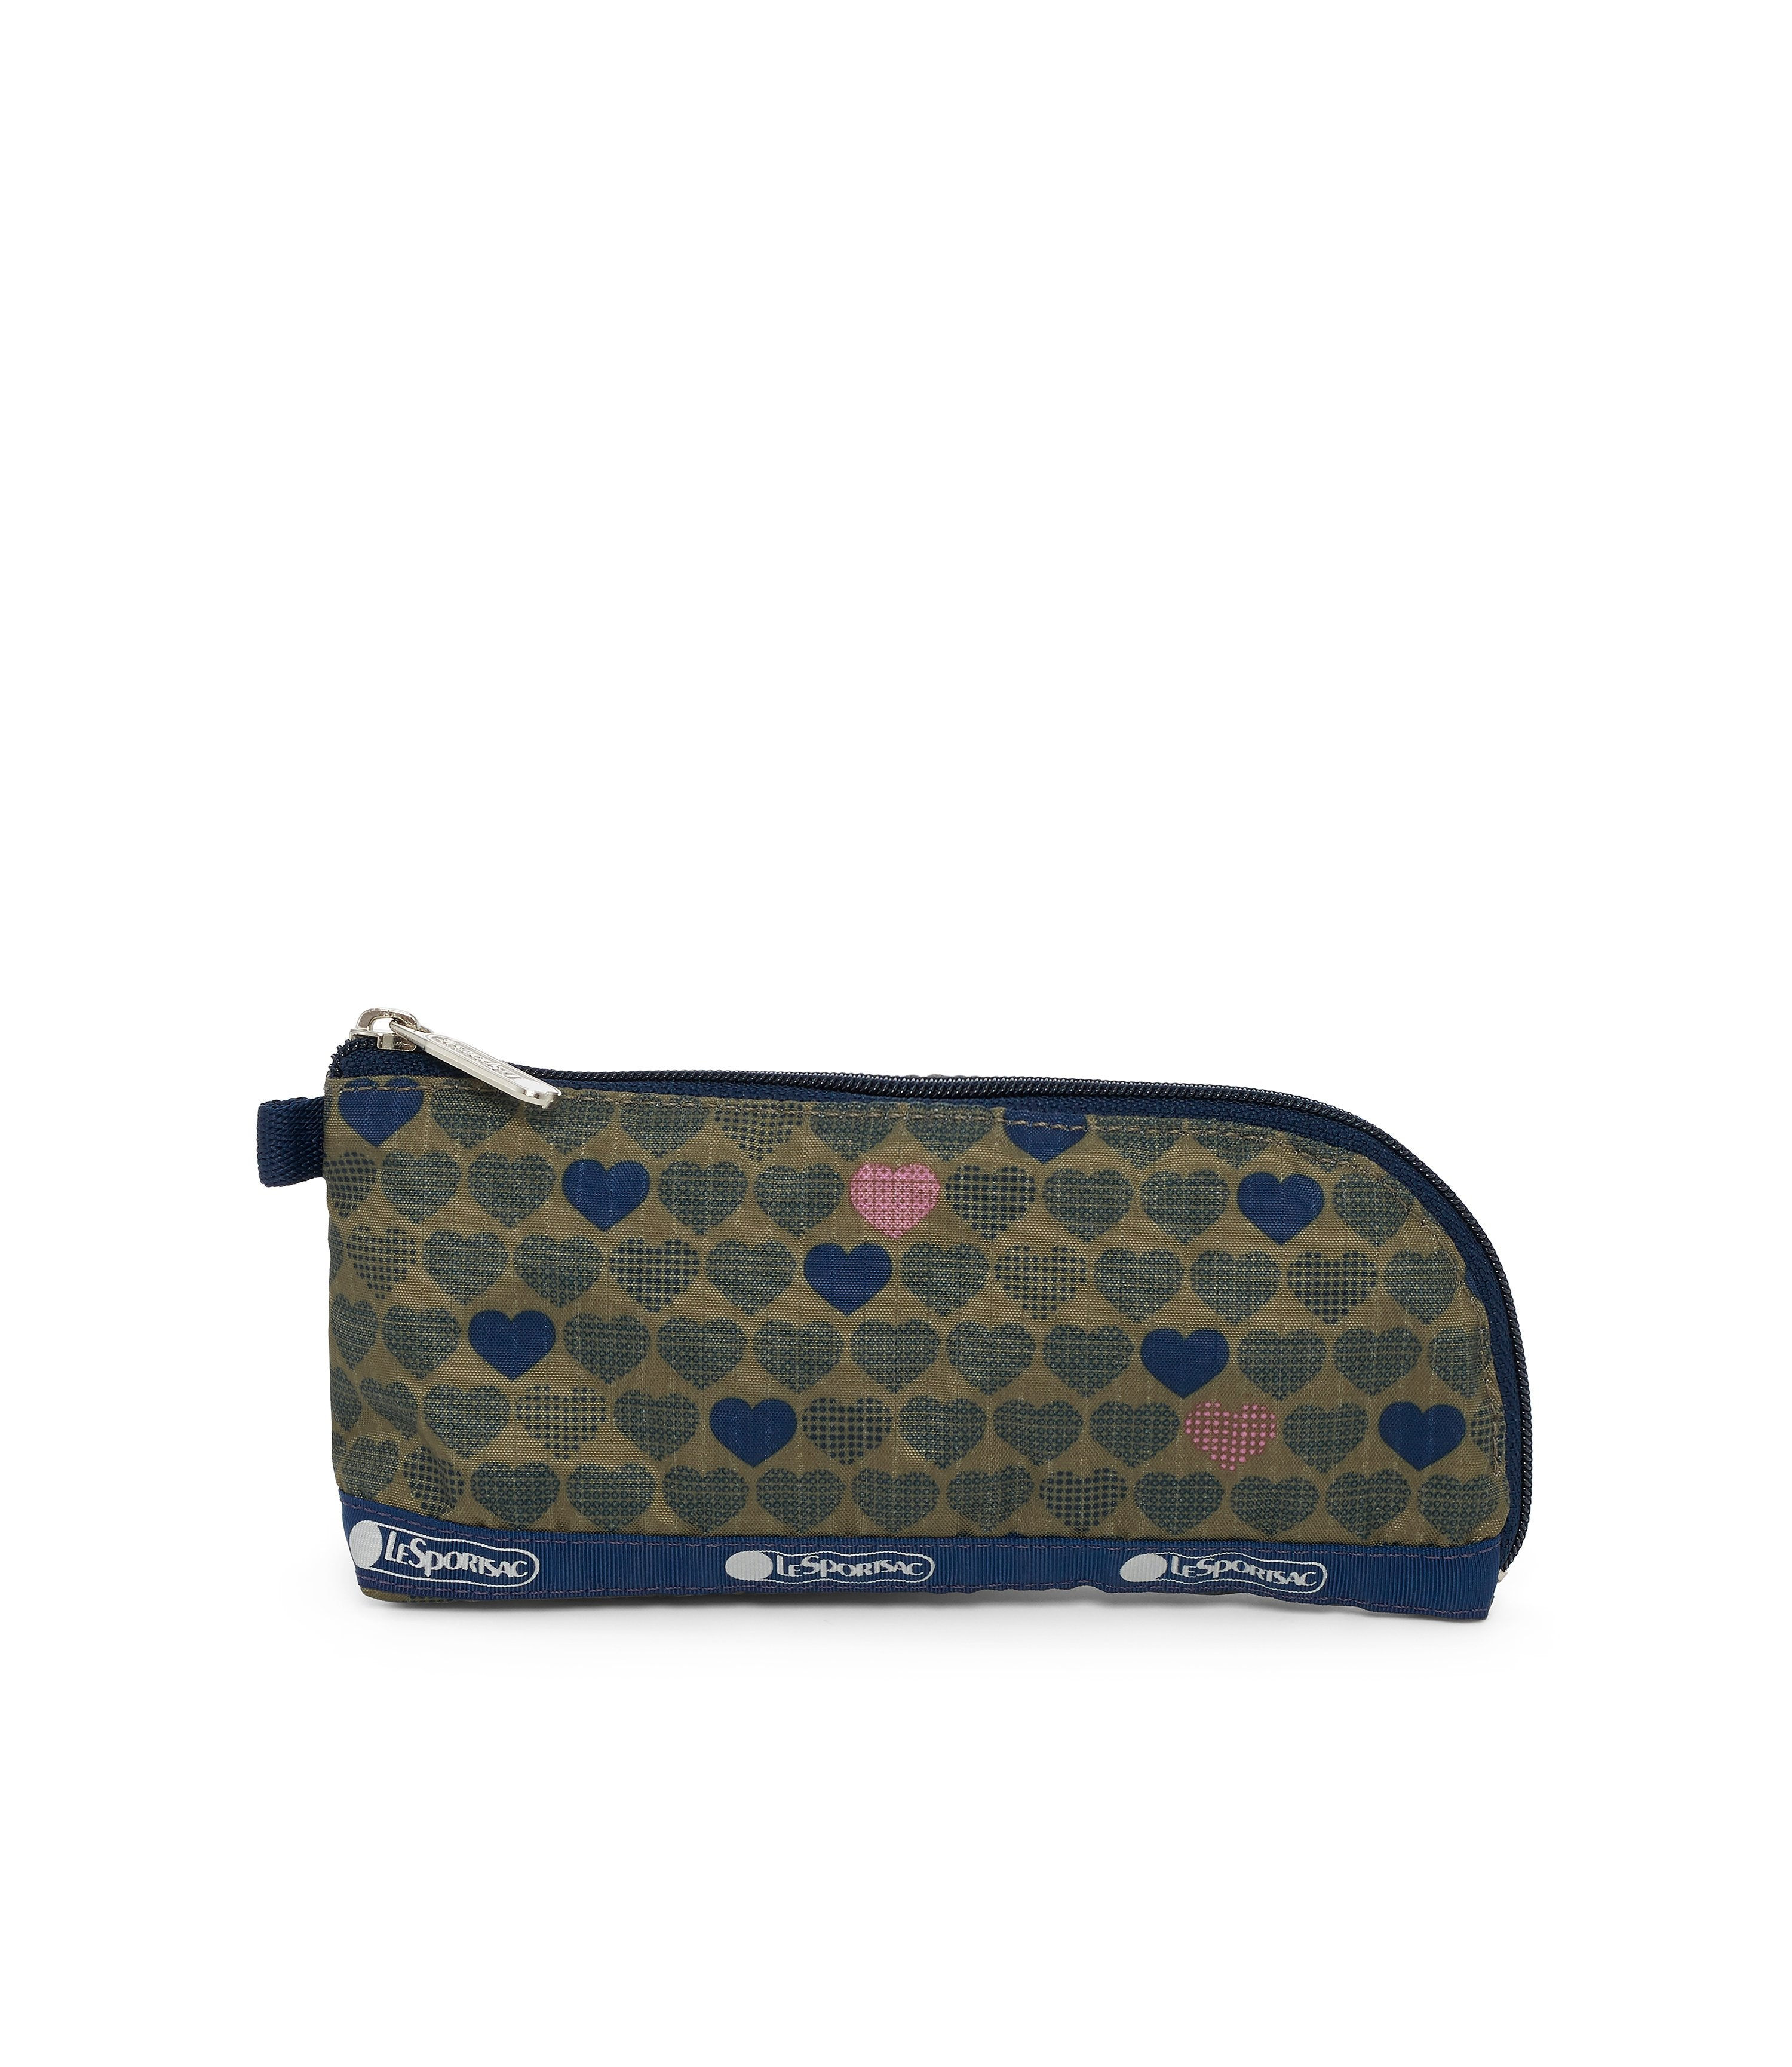 Everything Case, Accessories and Cosmetic Bag, LeSportsac, Exclusive! Wait For Love print